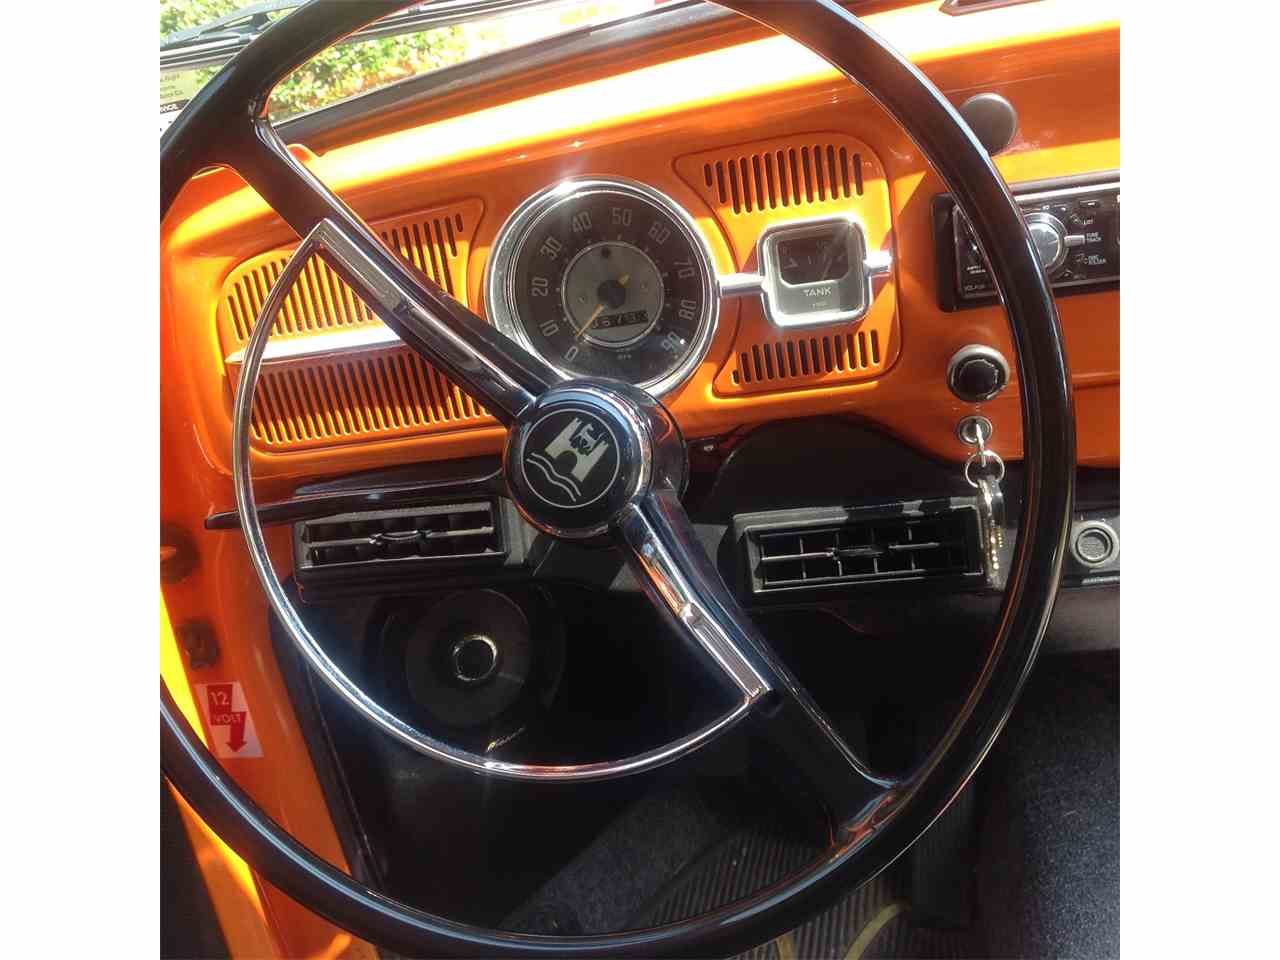 Large Picture of '67 Beetle located in Oklahoma - $10,000.00 Offered by a Private Seller - LMBP